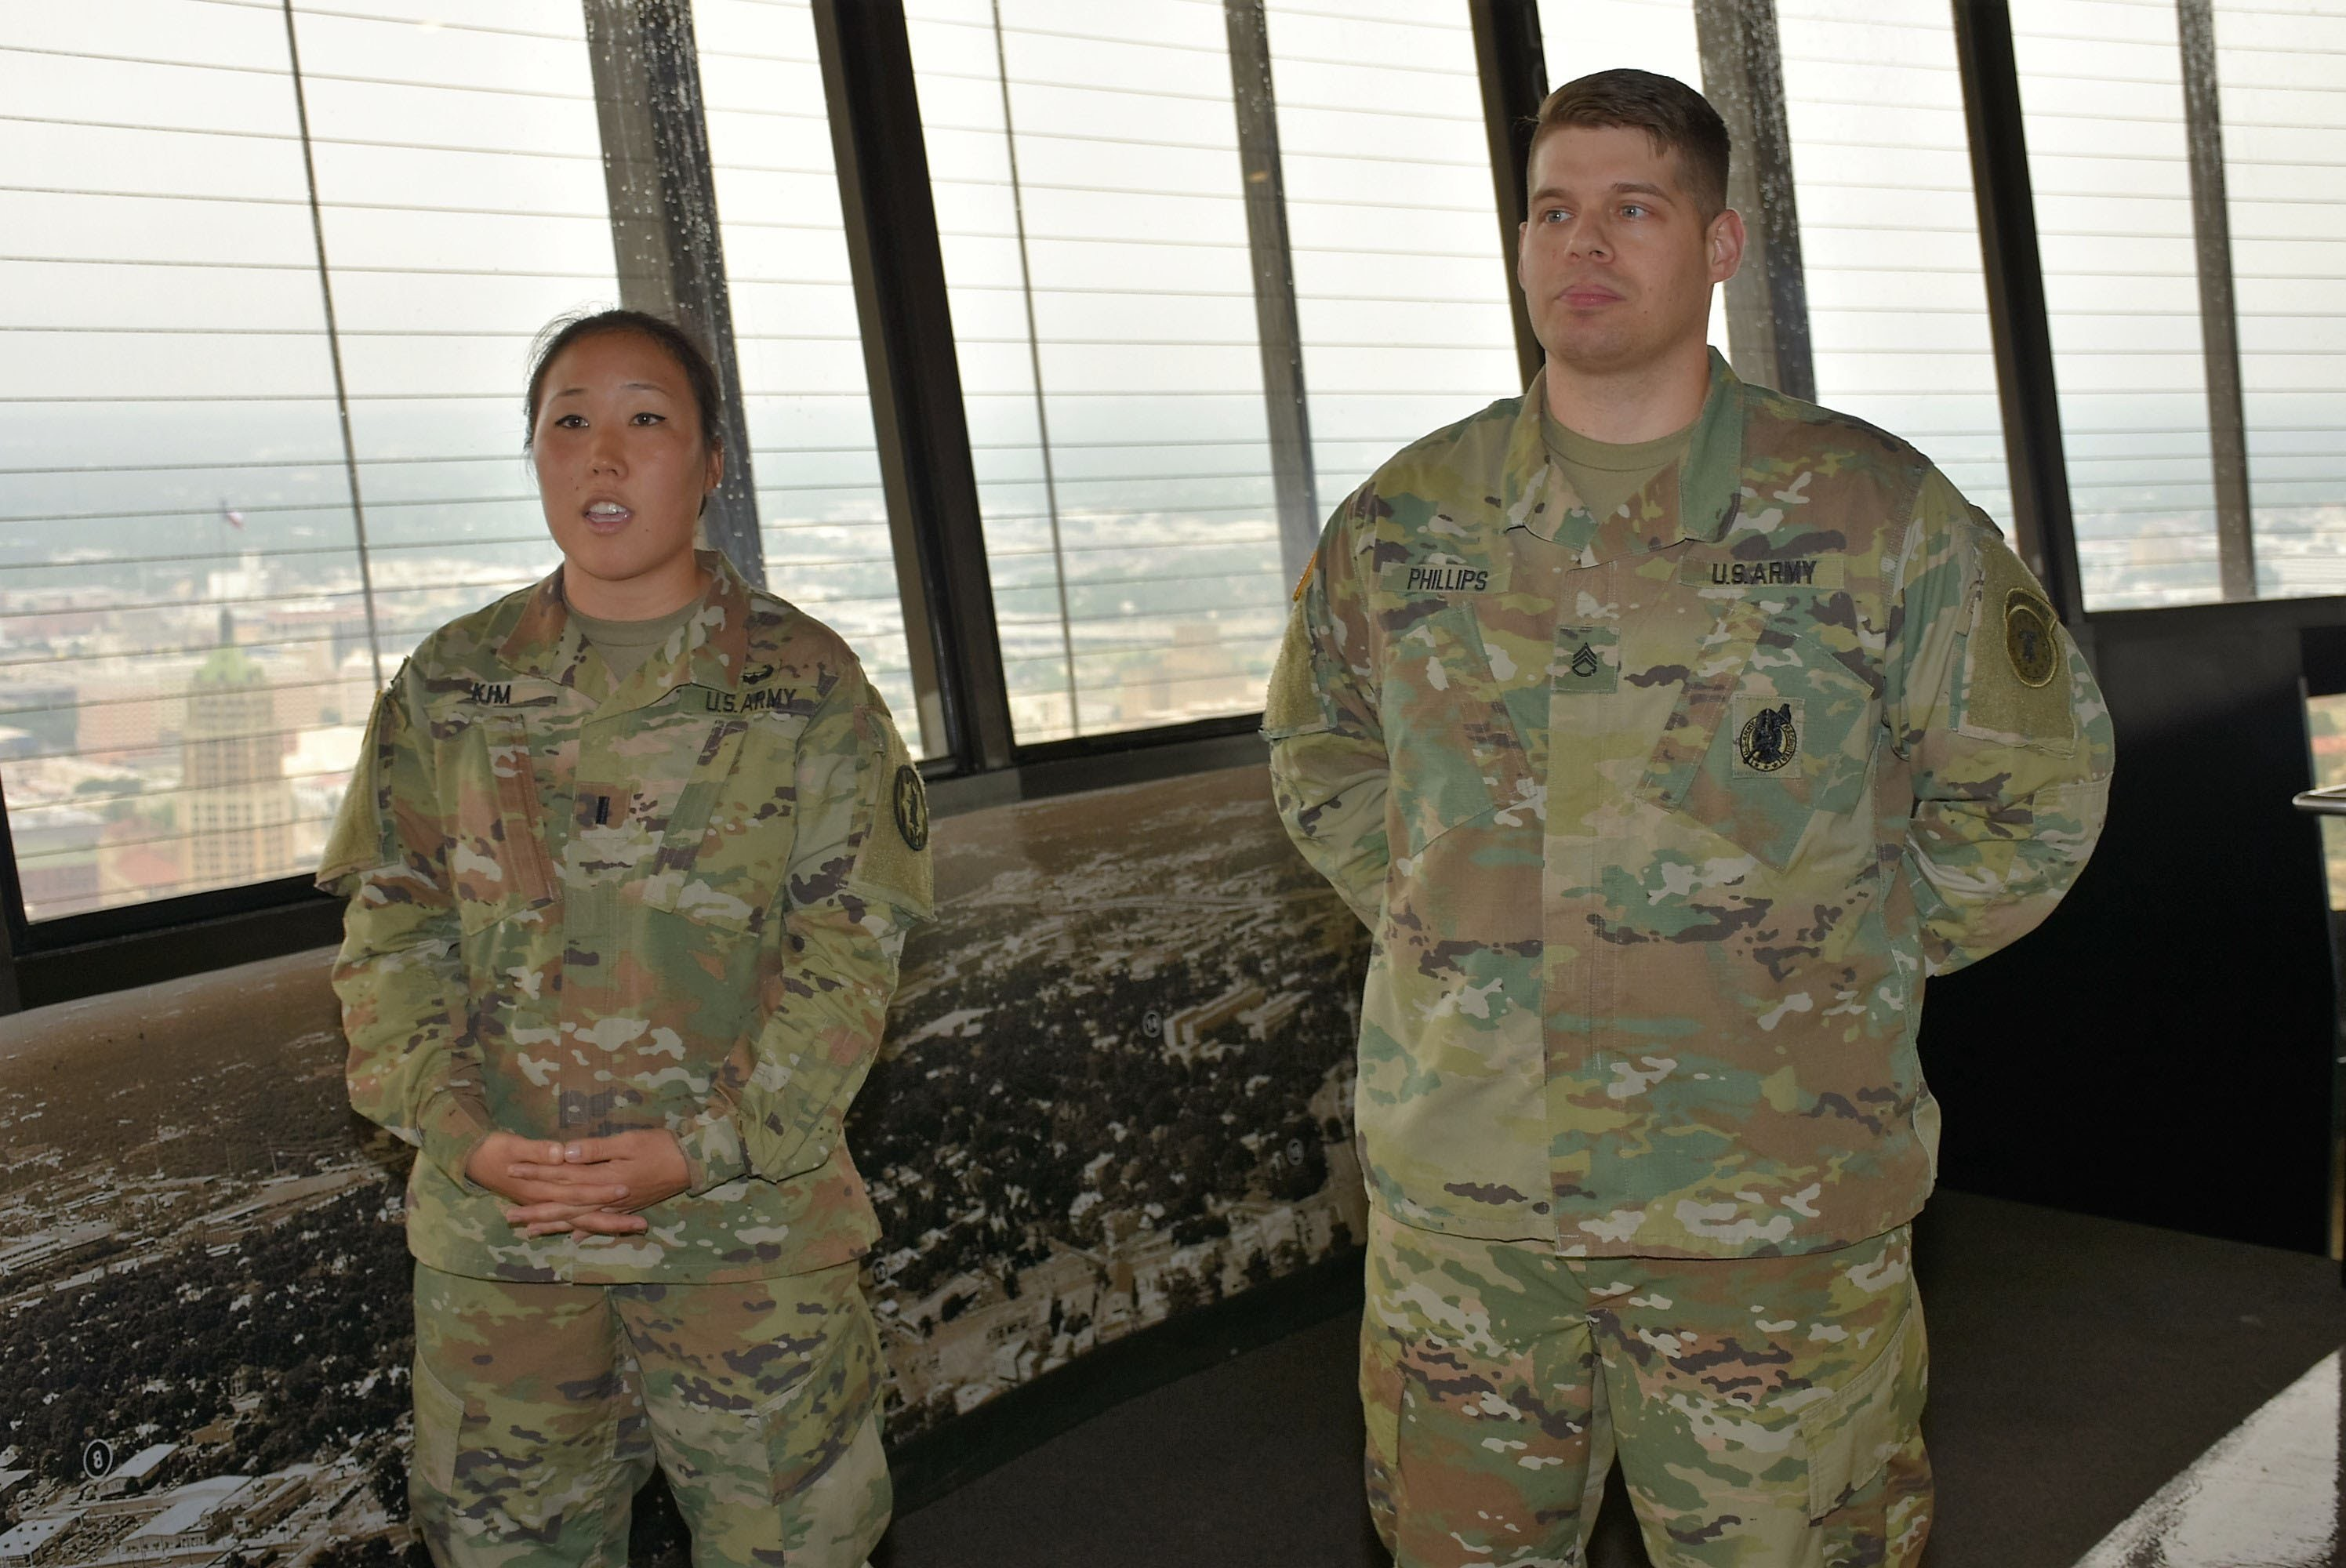 Army Tradition Continues As Health Care Recruiter Gets